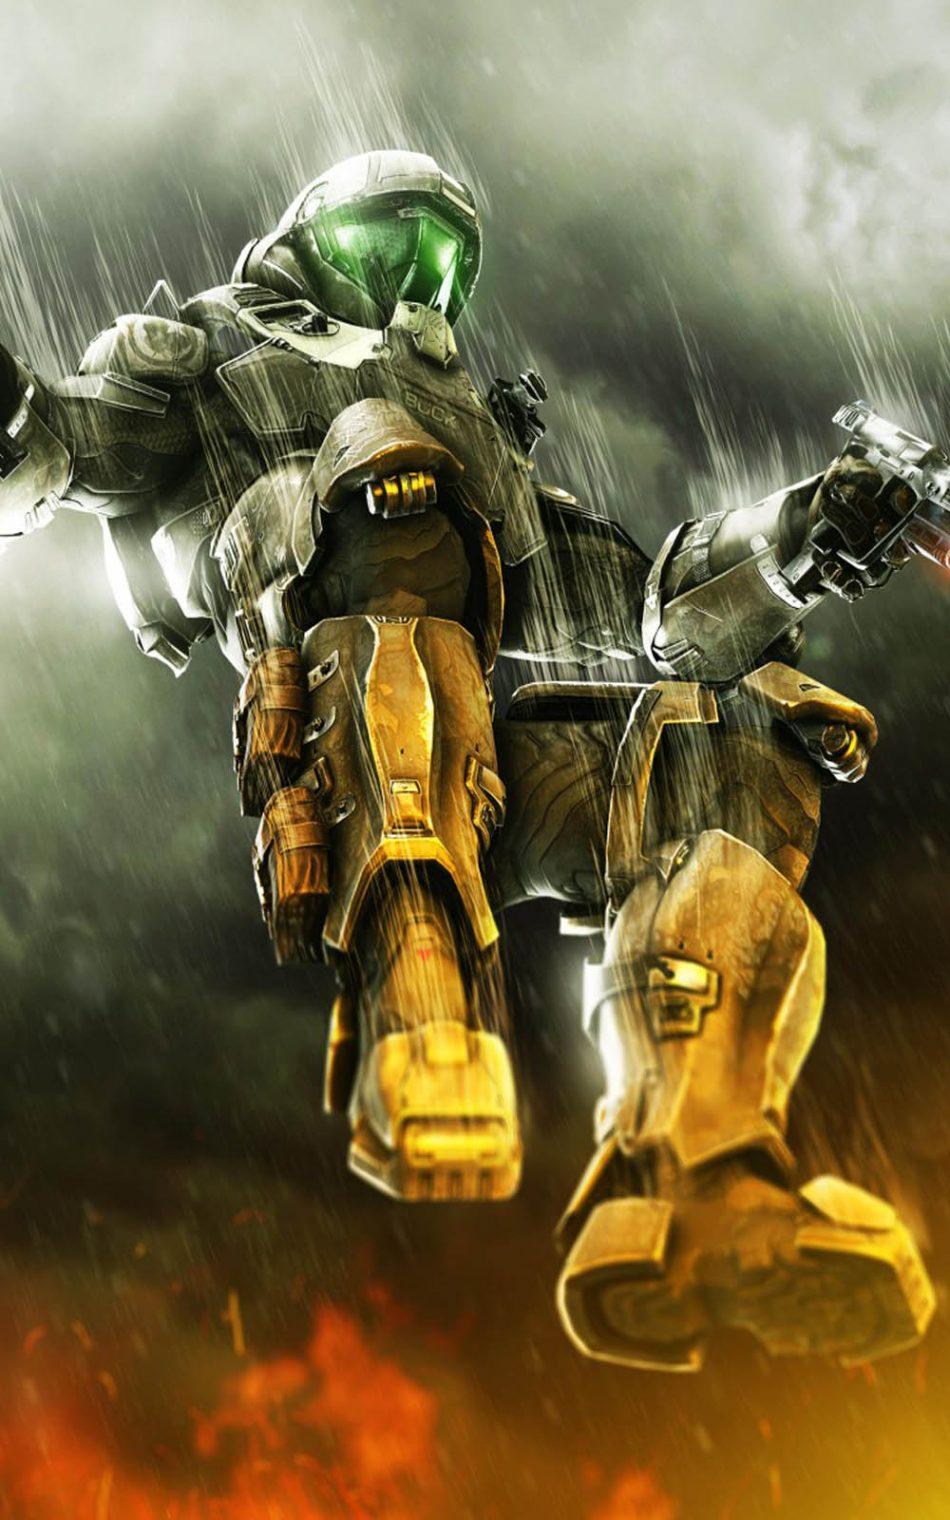 Download Halo 3 Game 2017 Free Pure 4k Ultra Hd Mobile Wallpaper